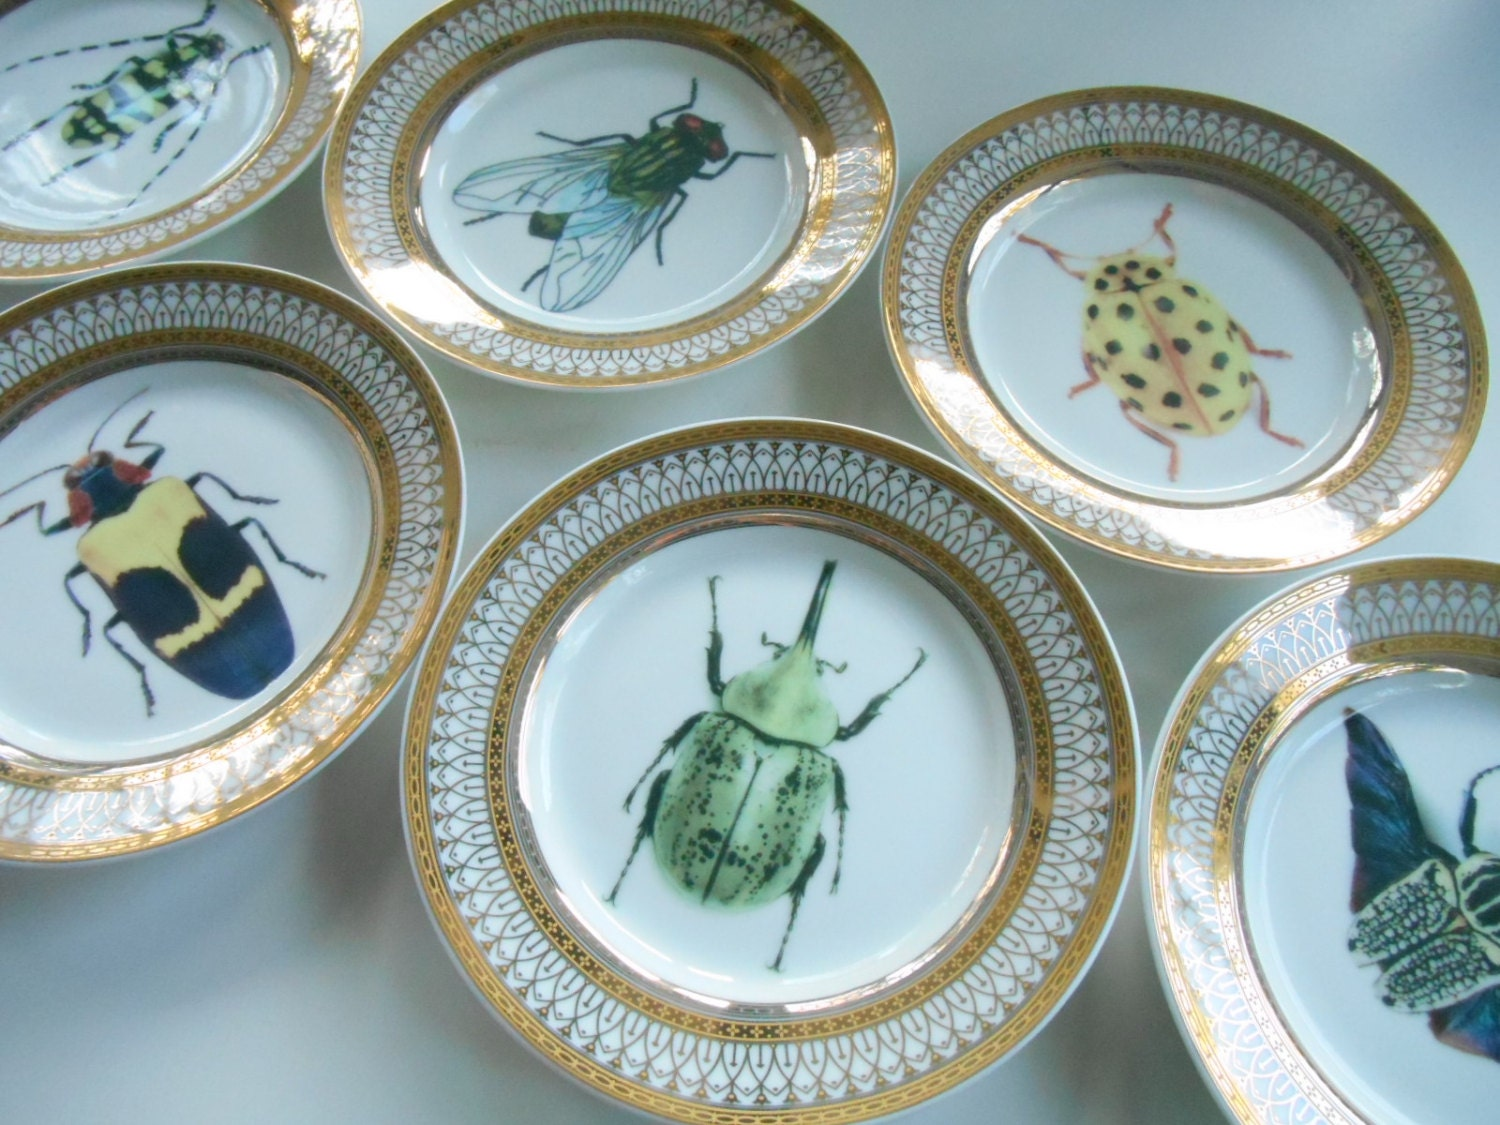 6 Gold Porcelain Bug/Insect Dessert Plates 6\  Beautiful Entomology Dinnerware & 6 Gold Porcelain Bug/Insect Dessert Plates 6\